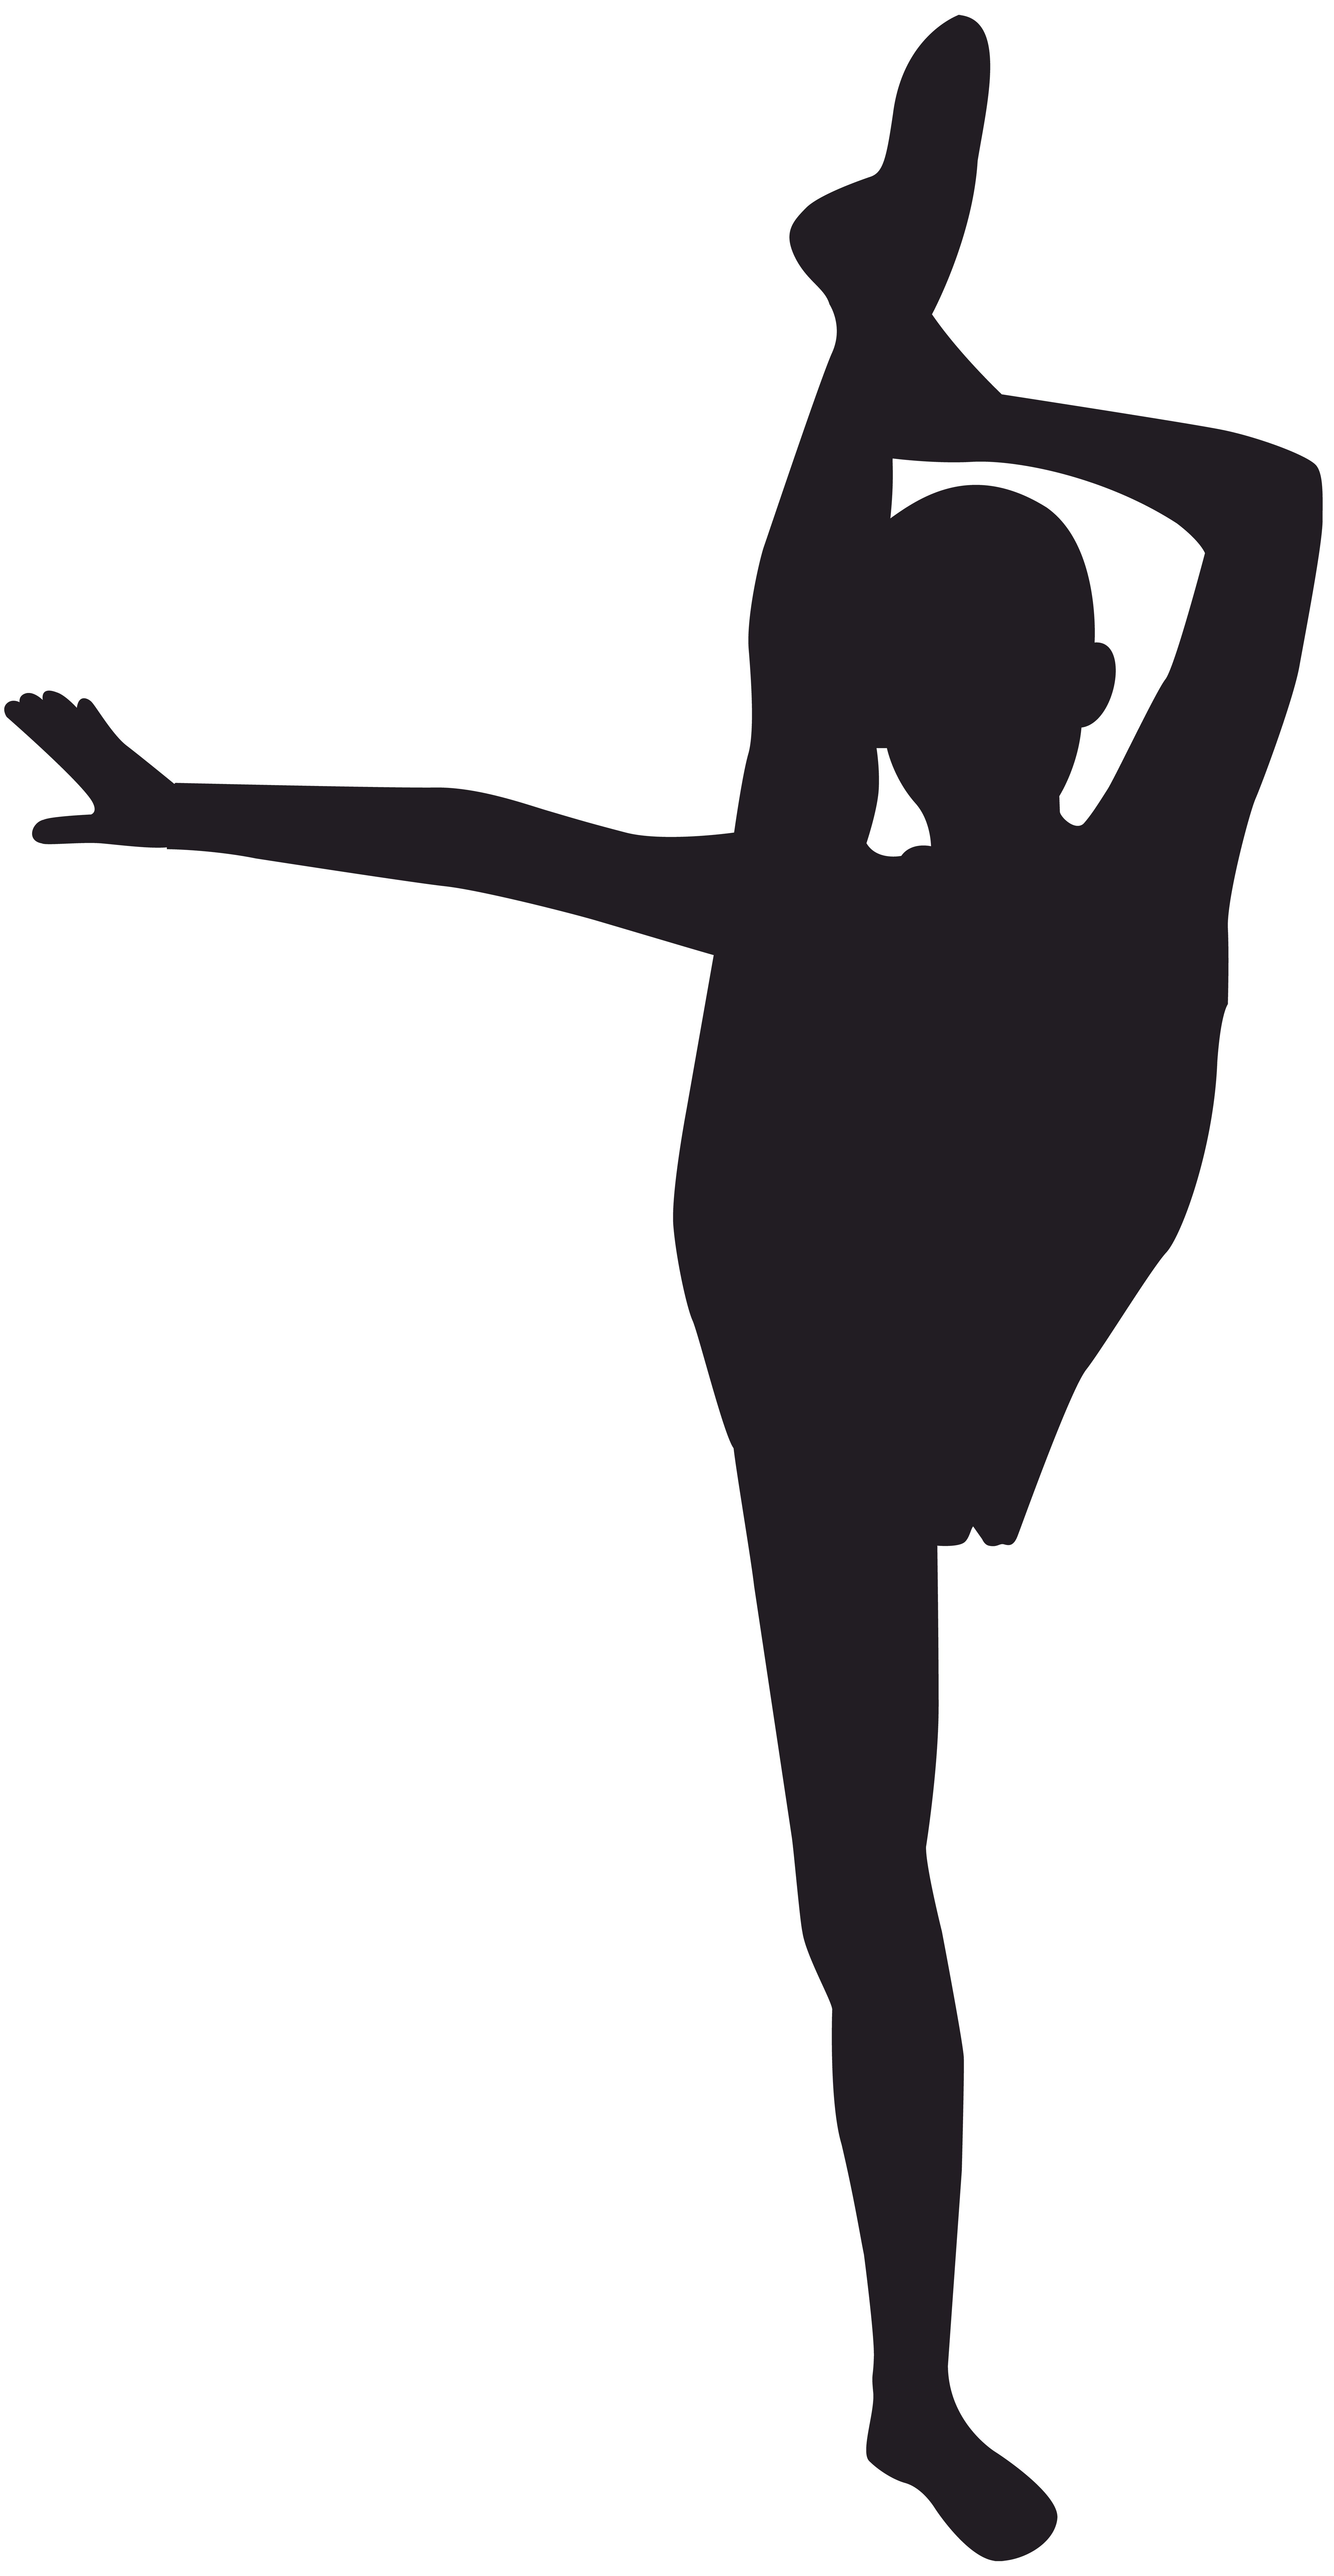 Clipart hospital silhouette. Gymnastics images at getdrawings